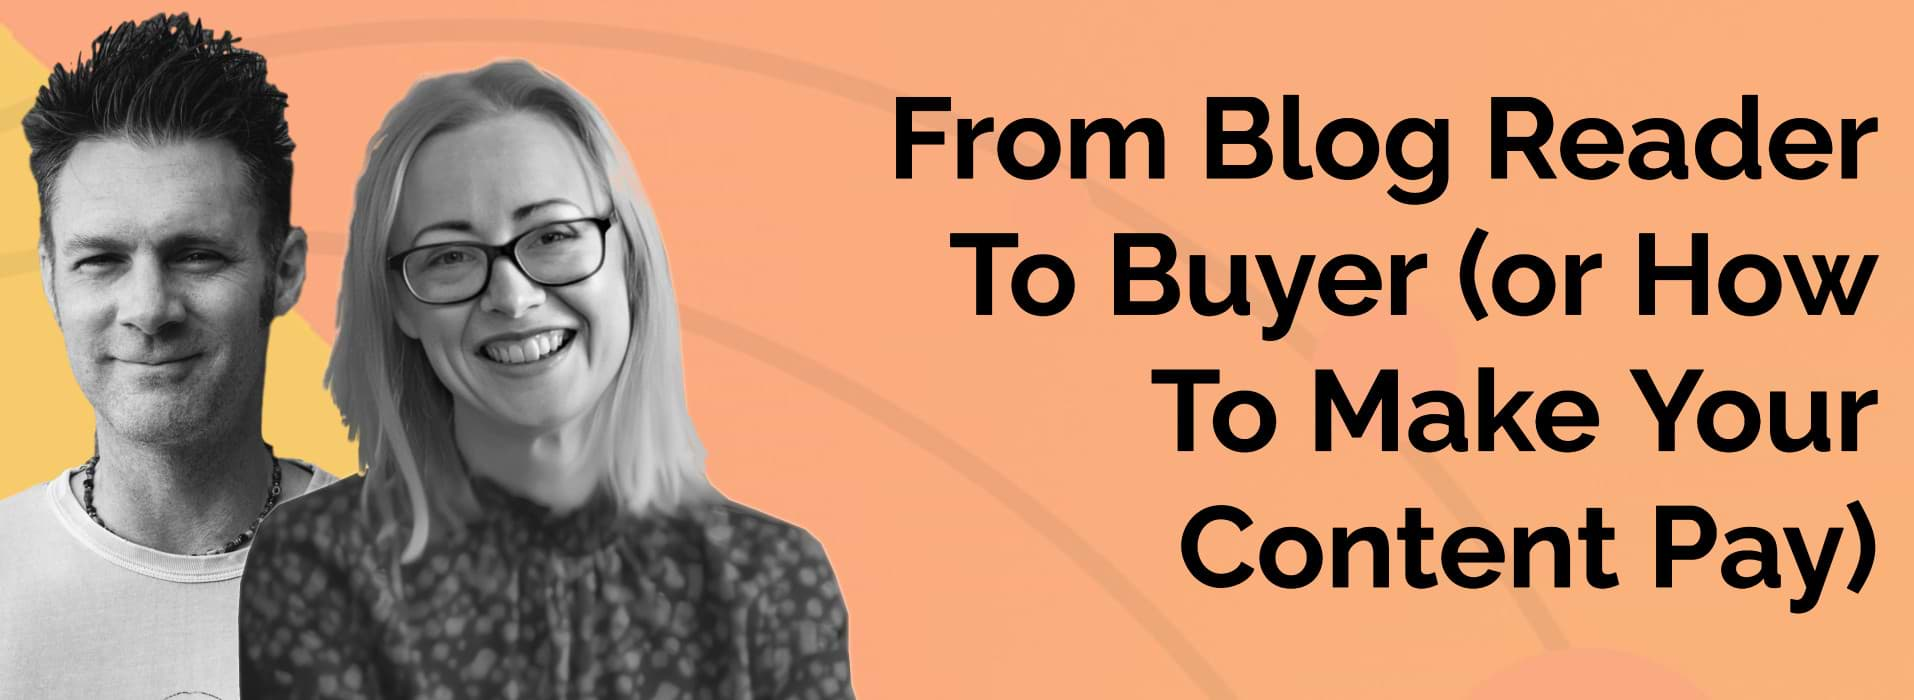 From Blog Reader To Buyer (or How To Make Your Content Pay)